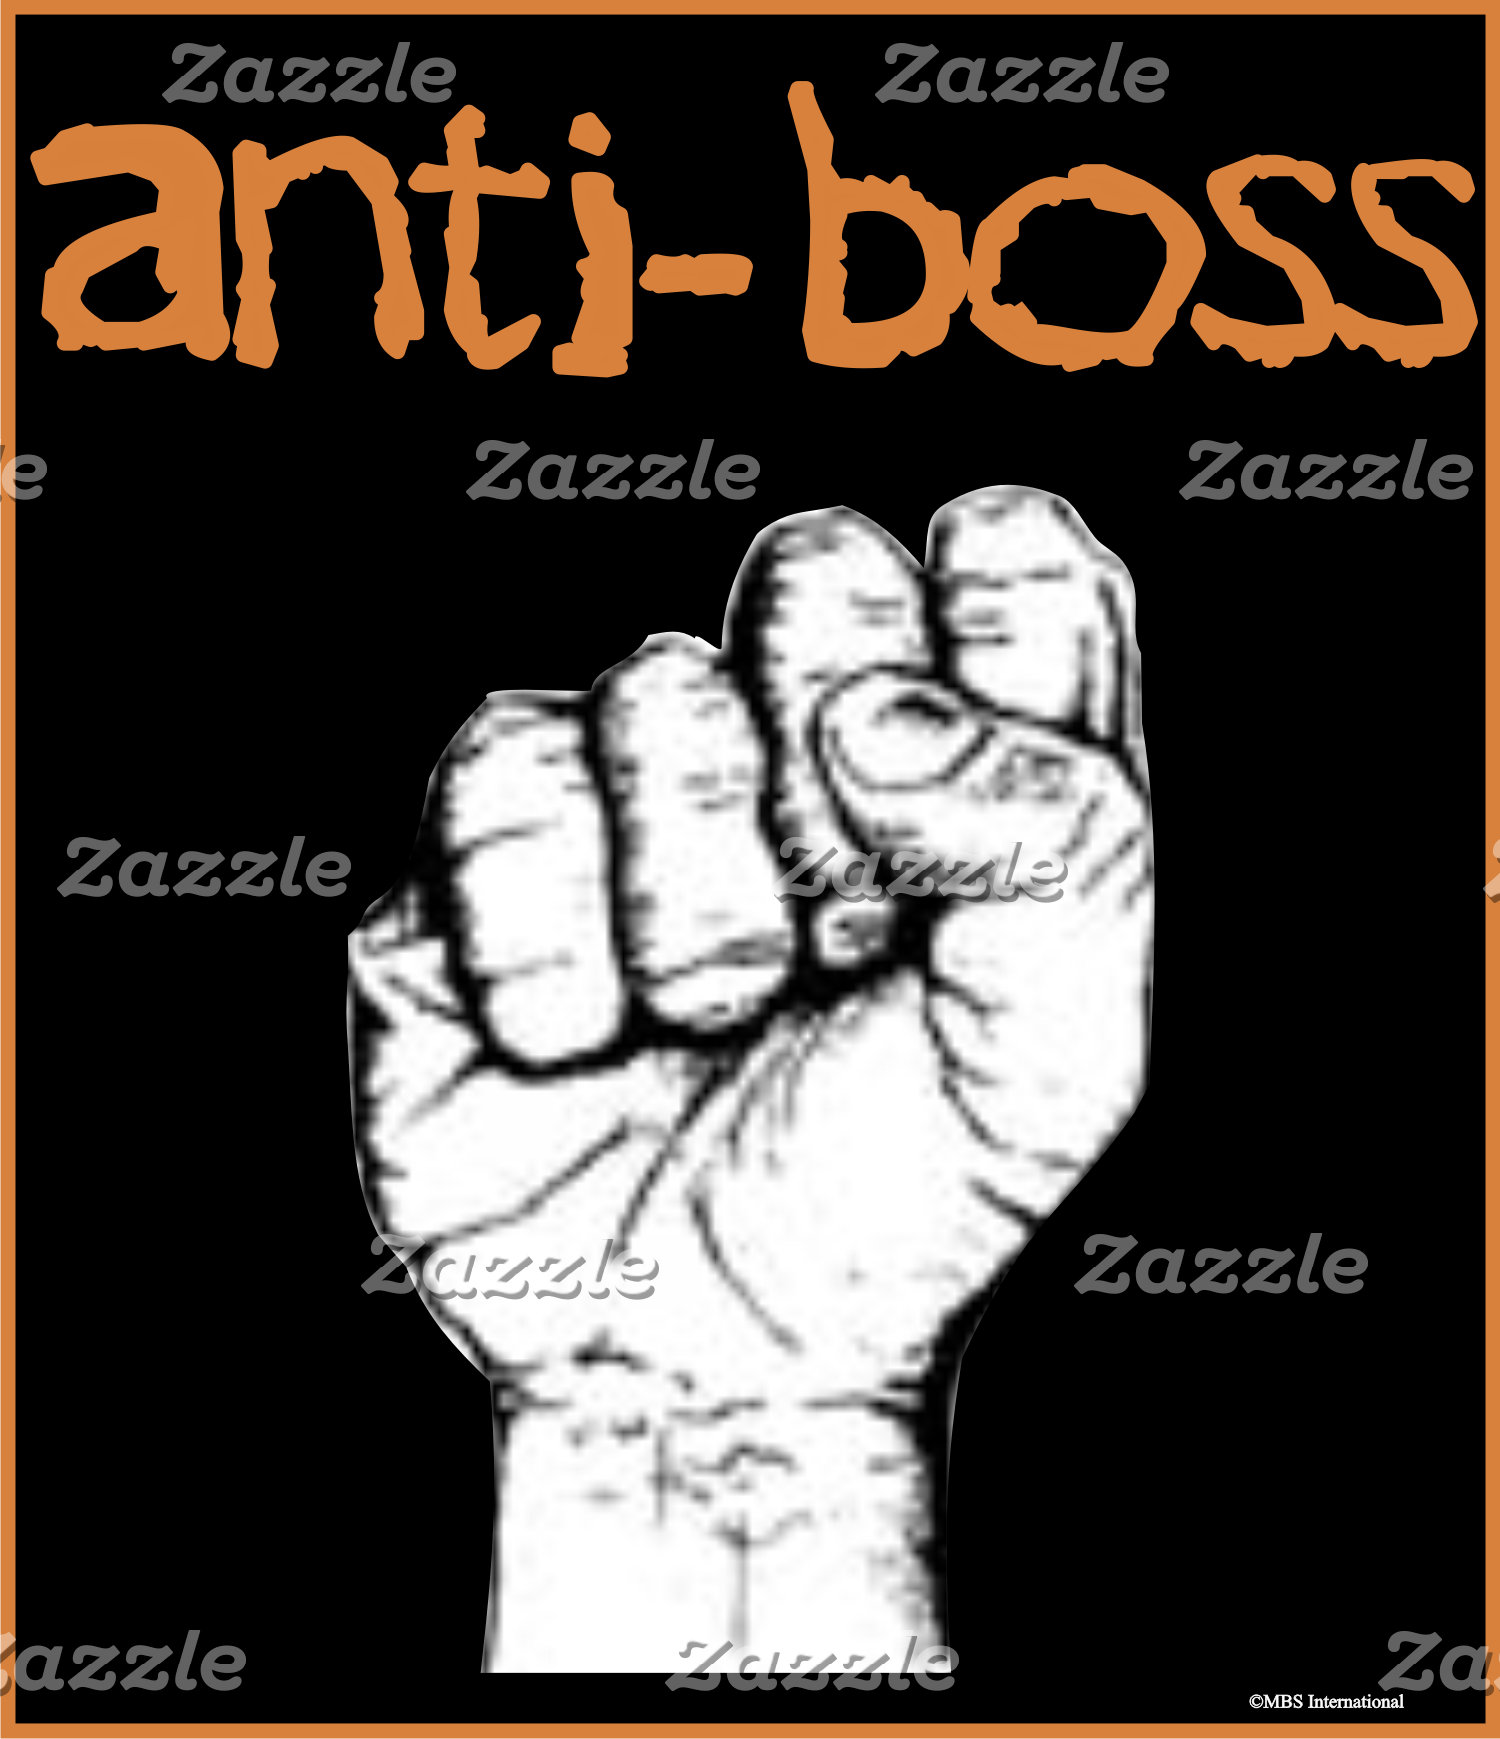 Anti Boss union workers rights labor minimum wage